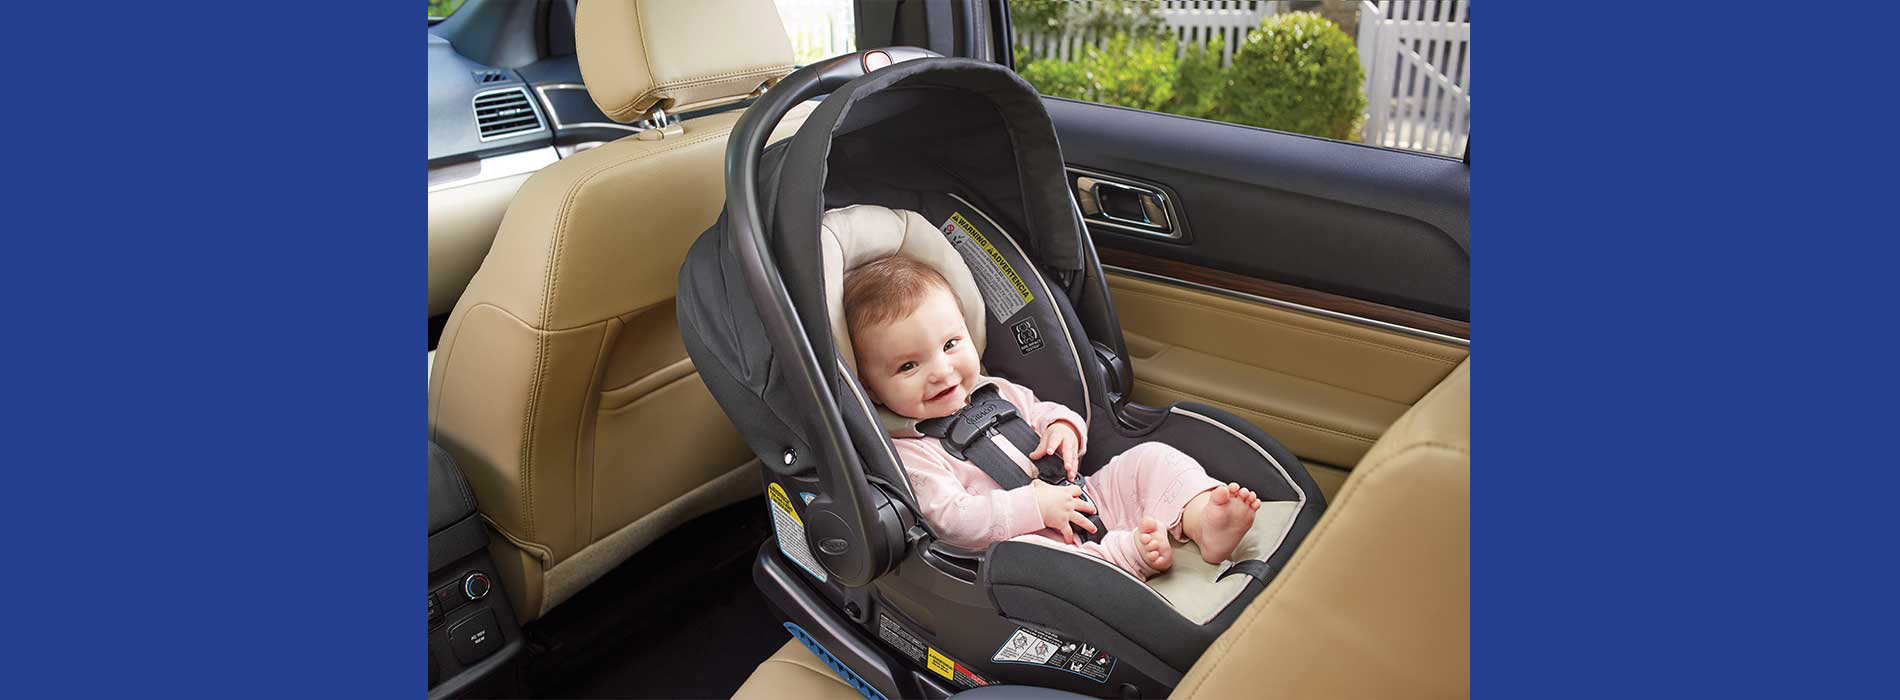 Everything Just Clicks With New Graco Snugride Snuglock